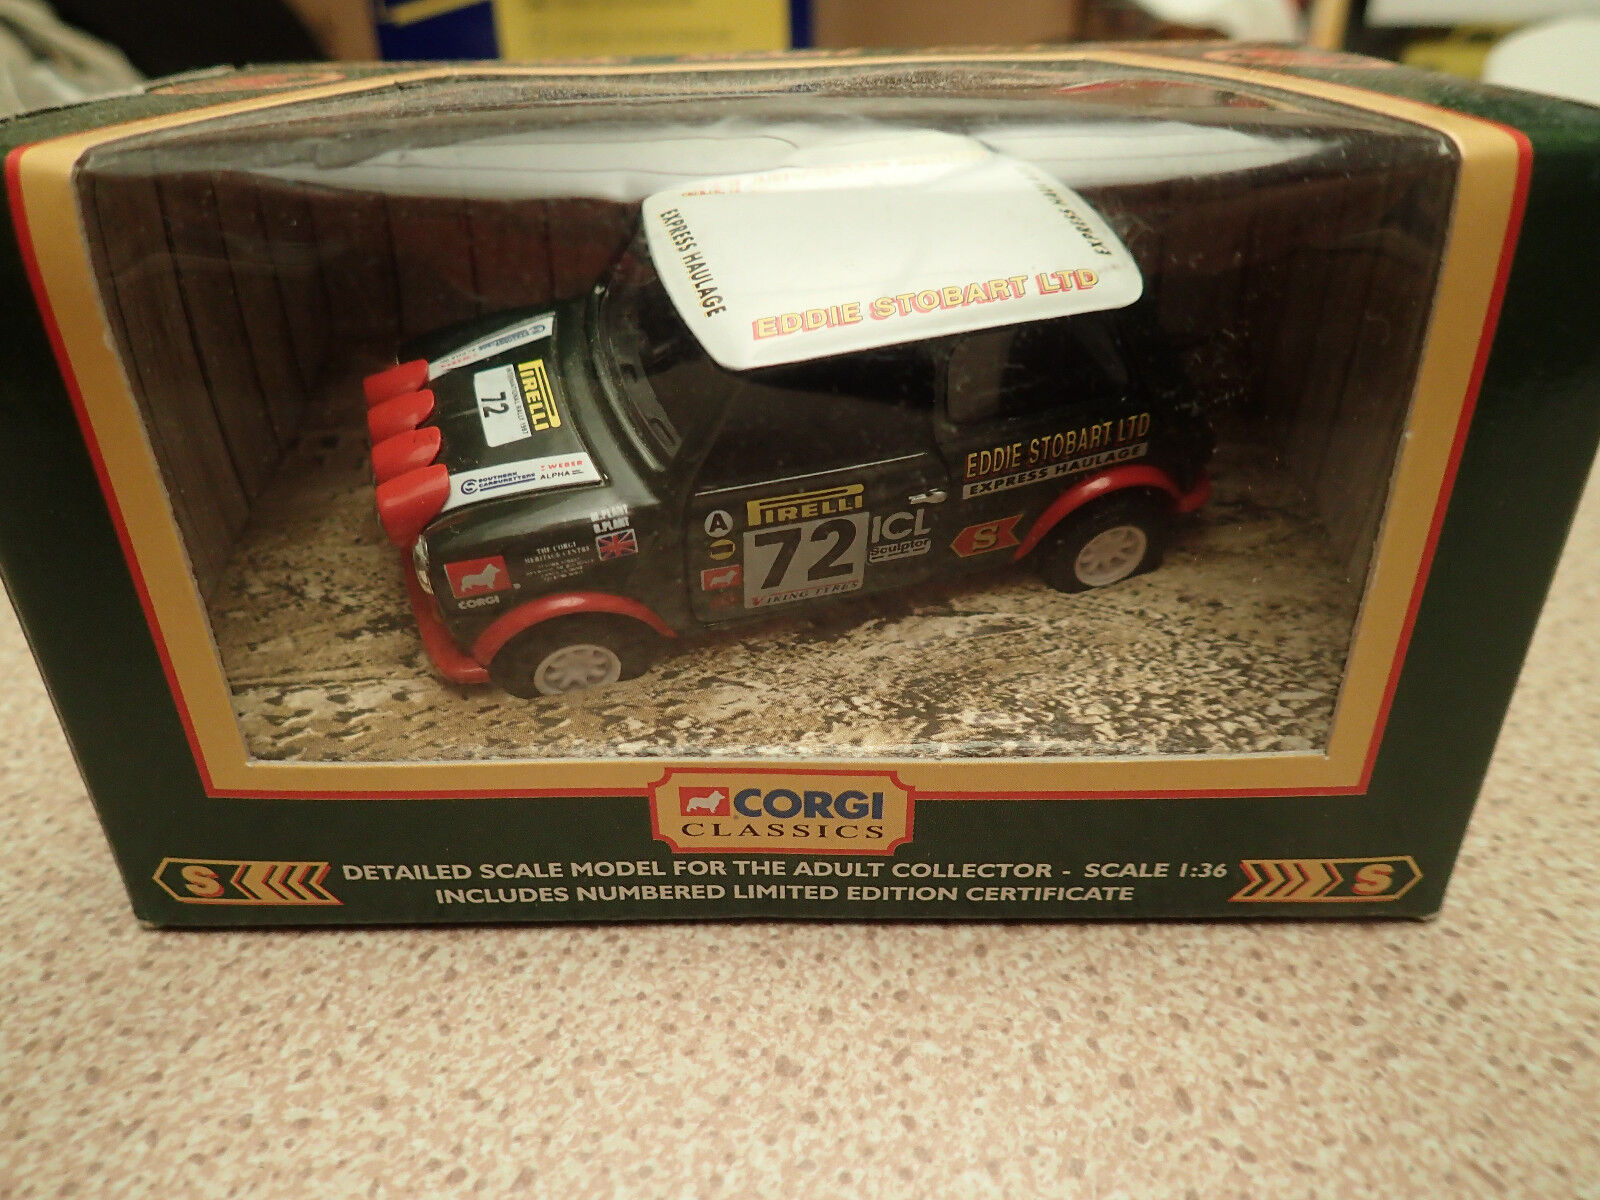 Ltd Edn Corgi Classics 04415 Eddie Stobart 1997 RAC Rally Mini Untouched